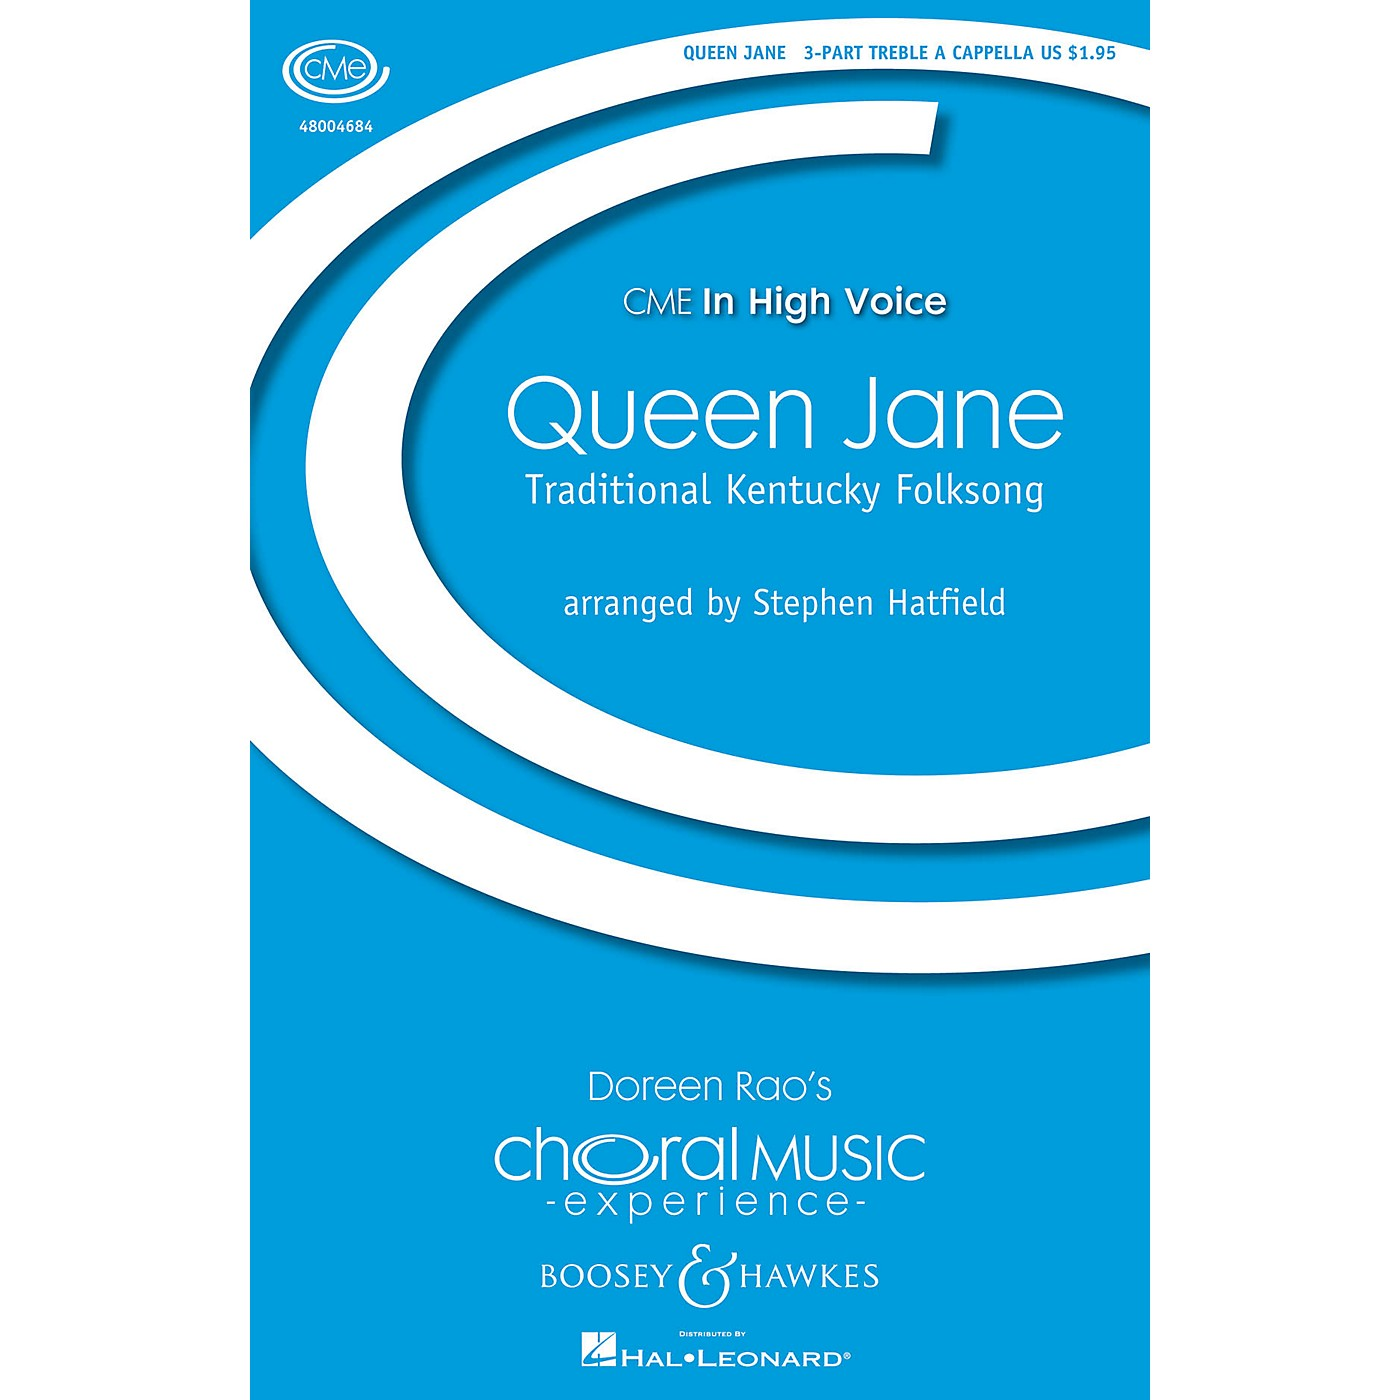 Boosey and Hawkes Queen Jane (CME In High Voice) 3 Part Treble A Cappella arranged by Stephen Hatfield thumbnail